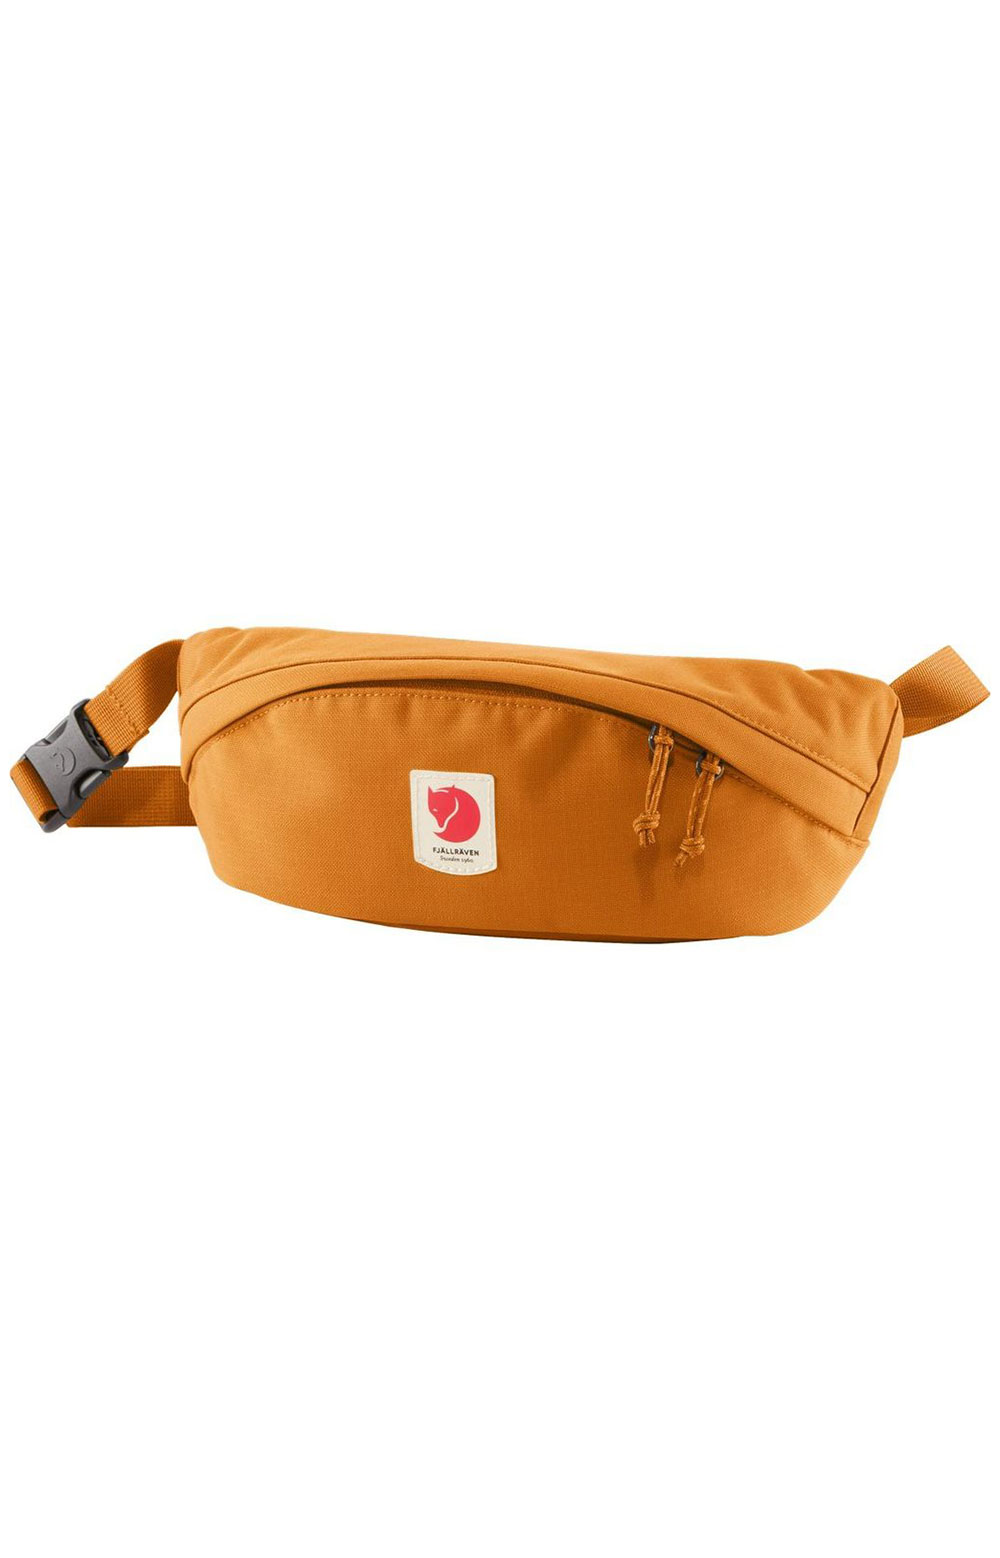 Ulvo Hip Pack Medium - Red/Gold